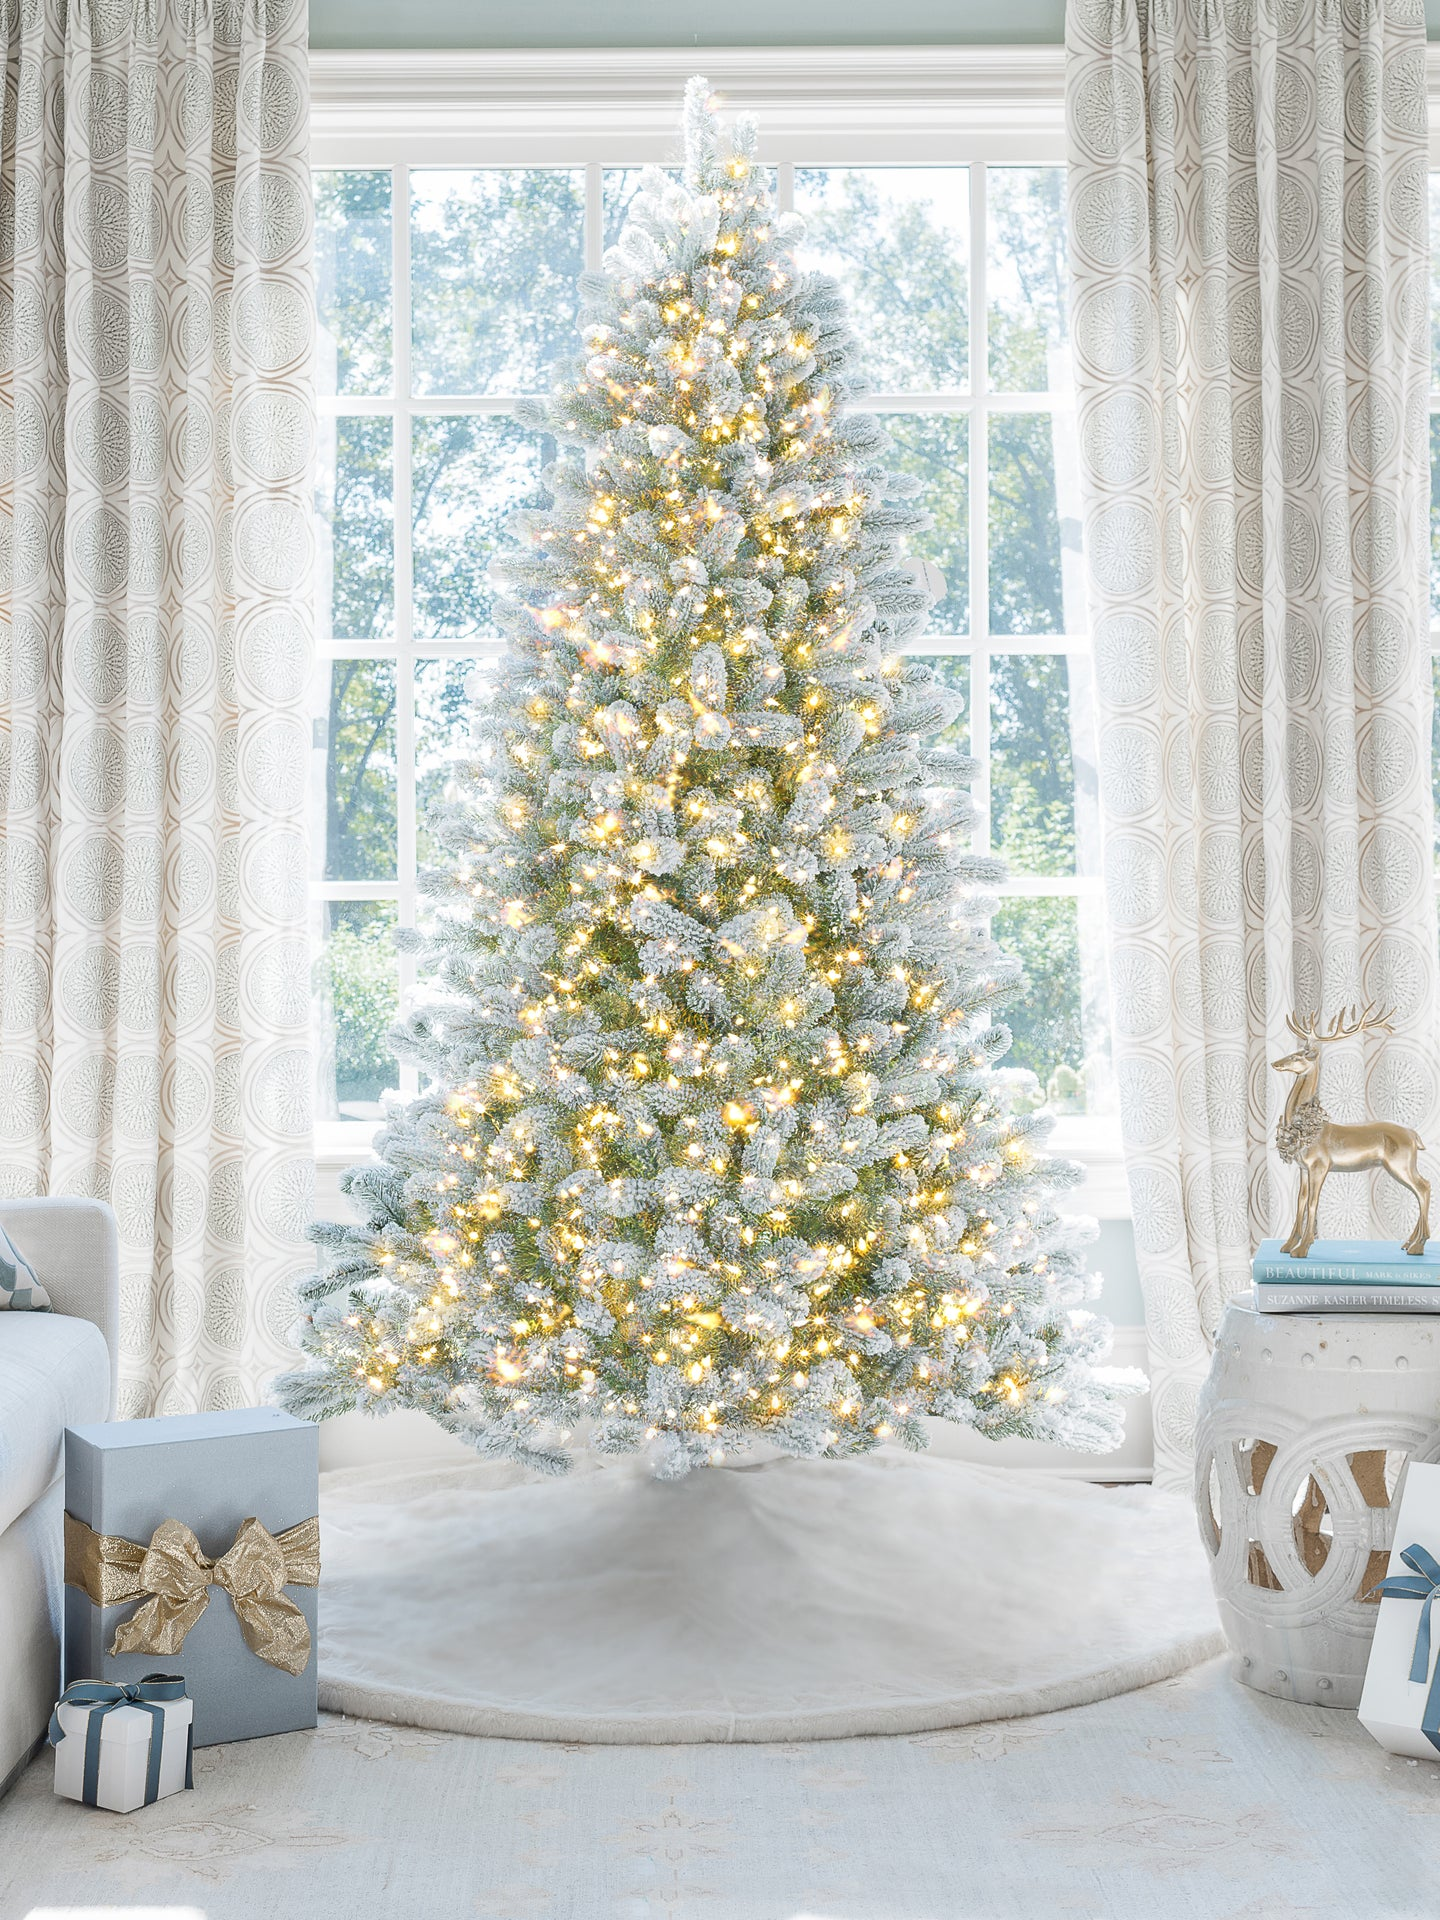 8' King Flock® Artificial Christmas Tree with 900 with Warm White LED Lights